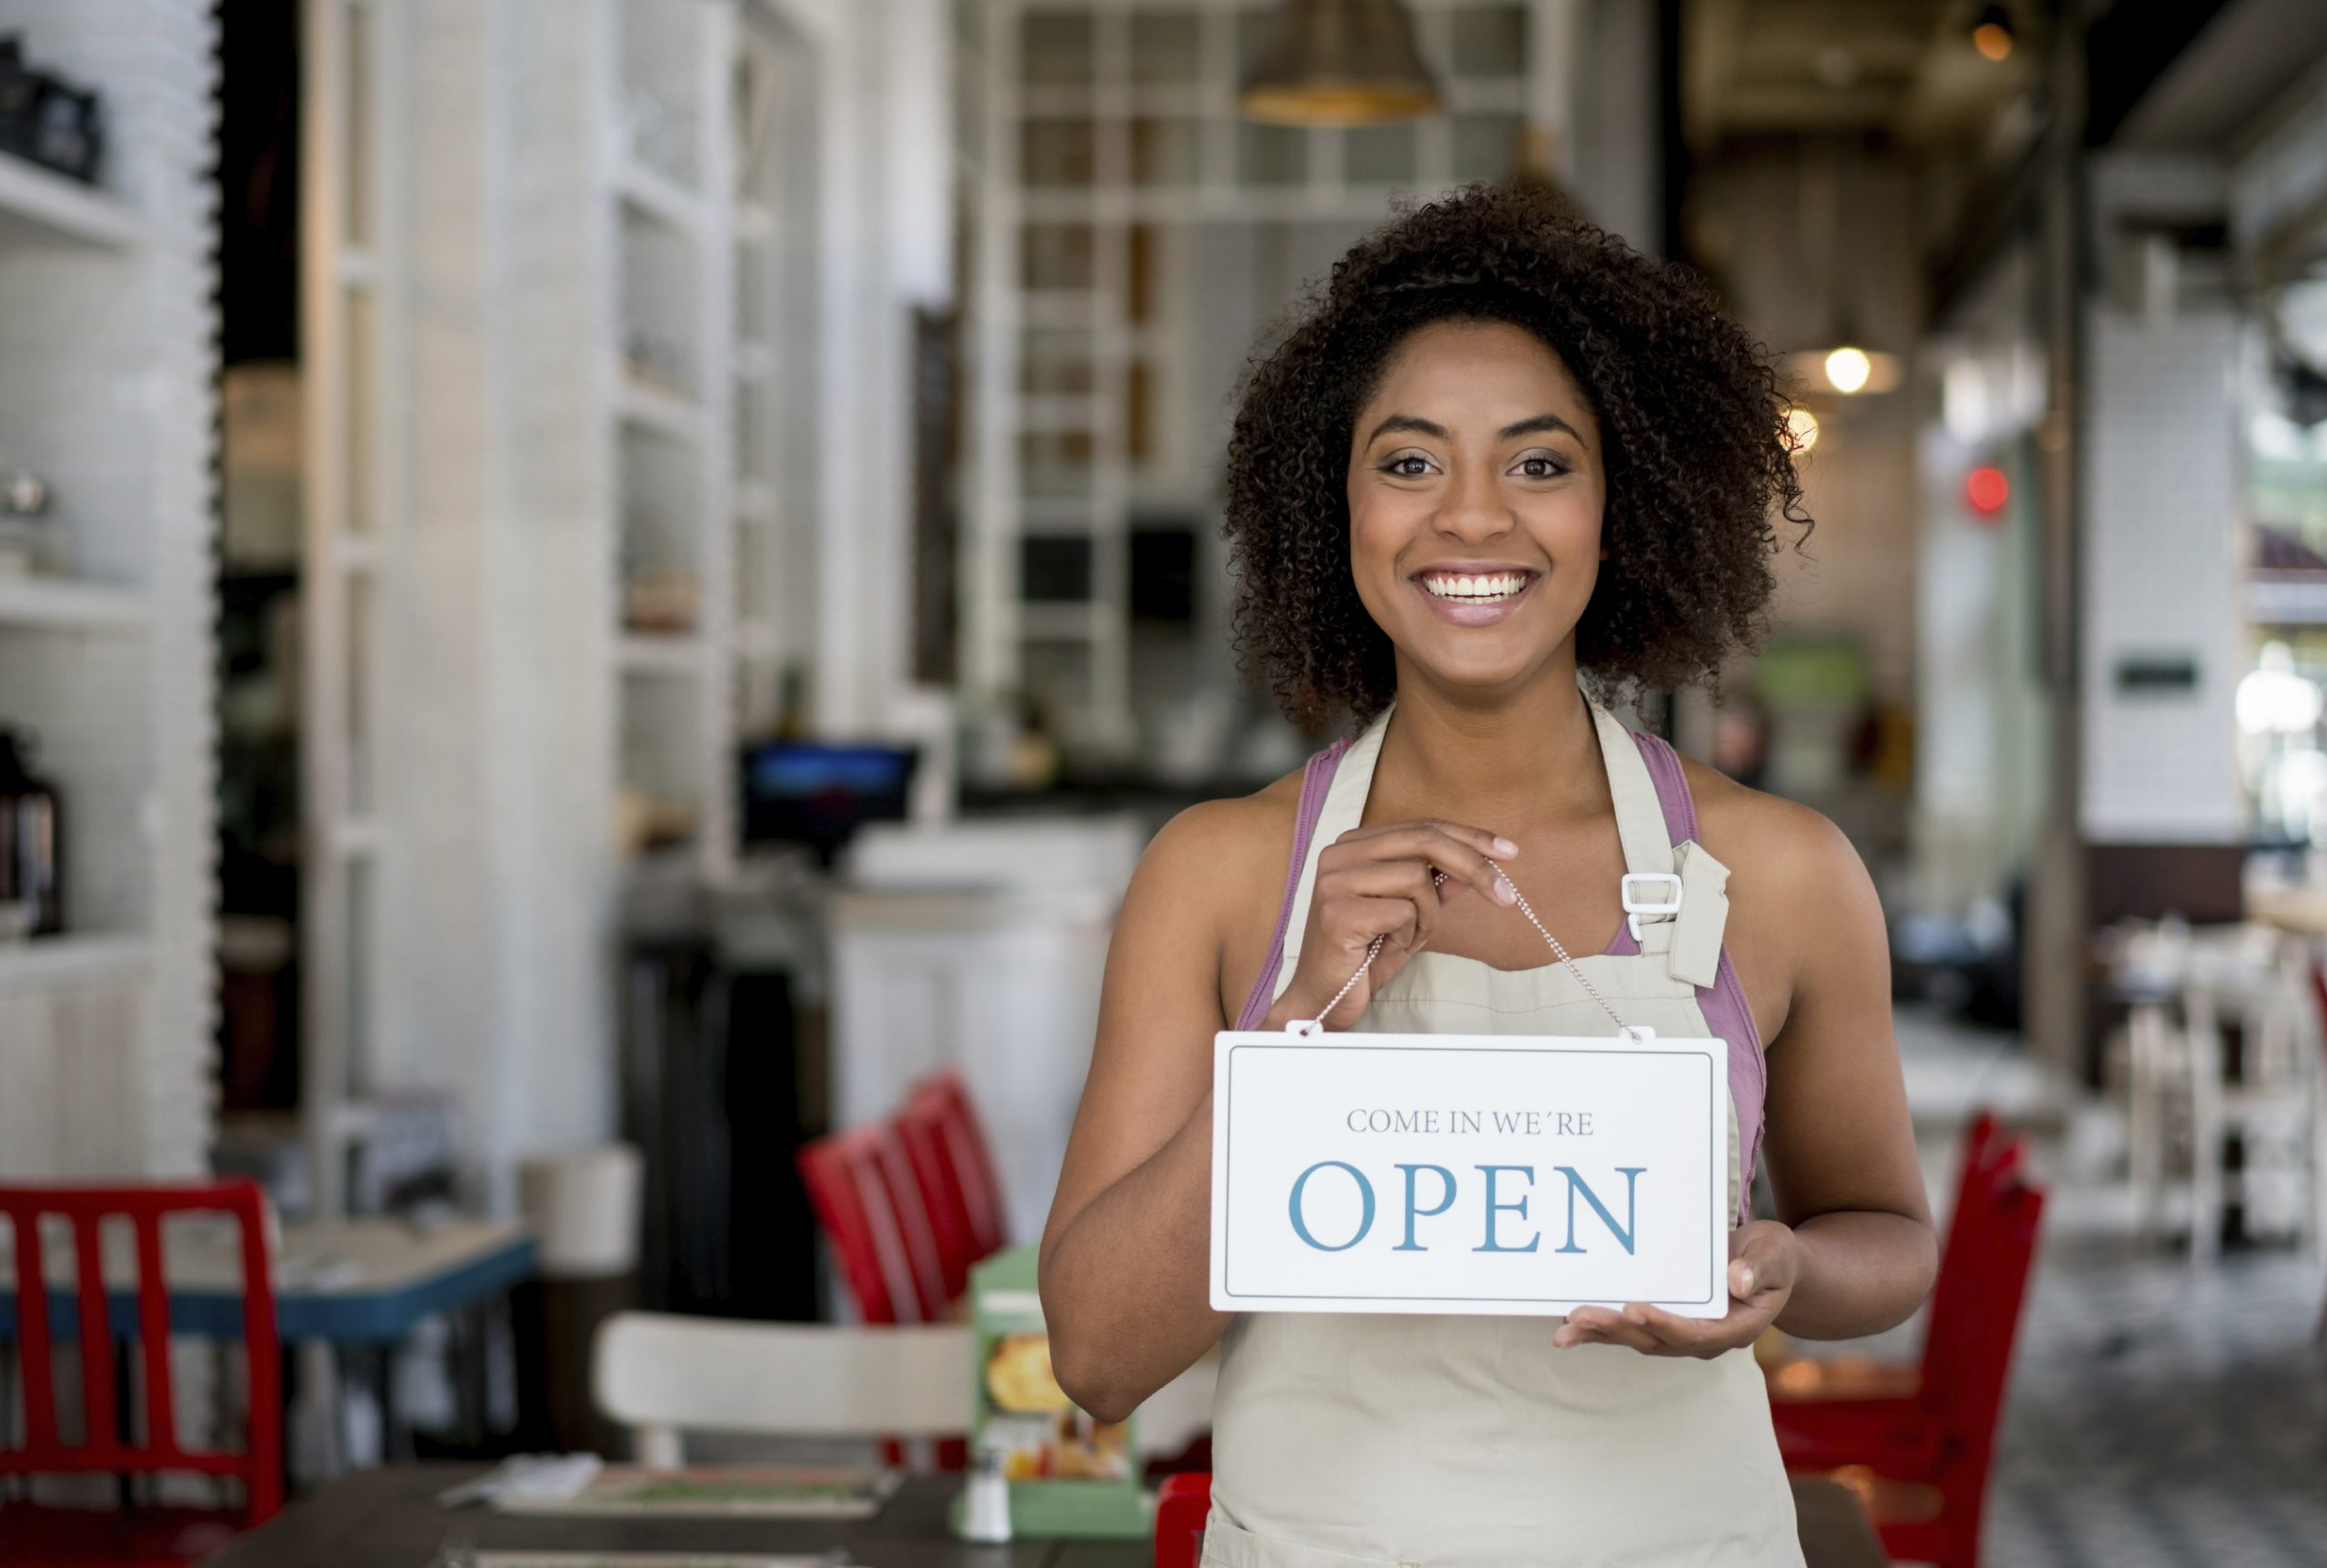 How to Start a Small Restaurant? Easy Business Answers